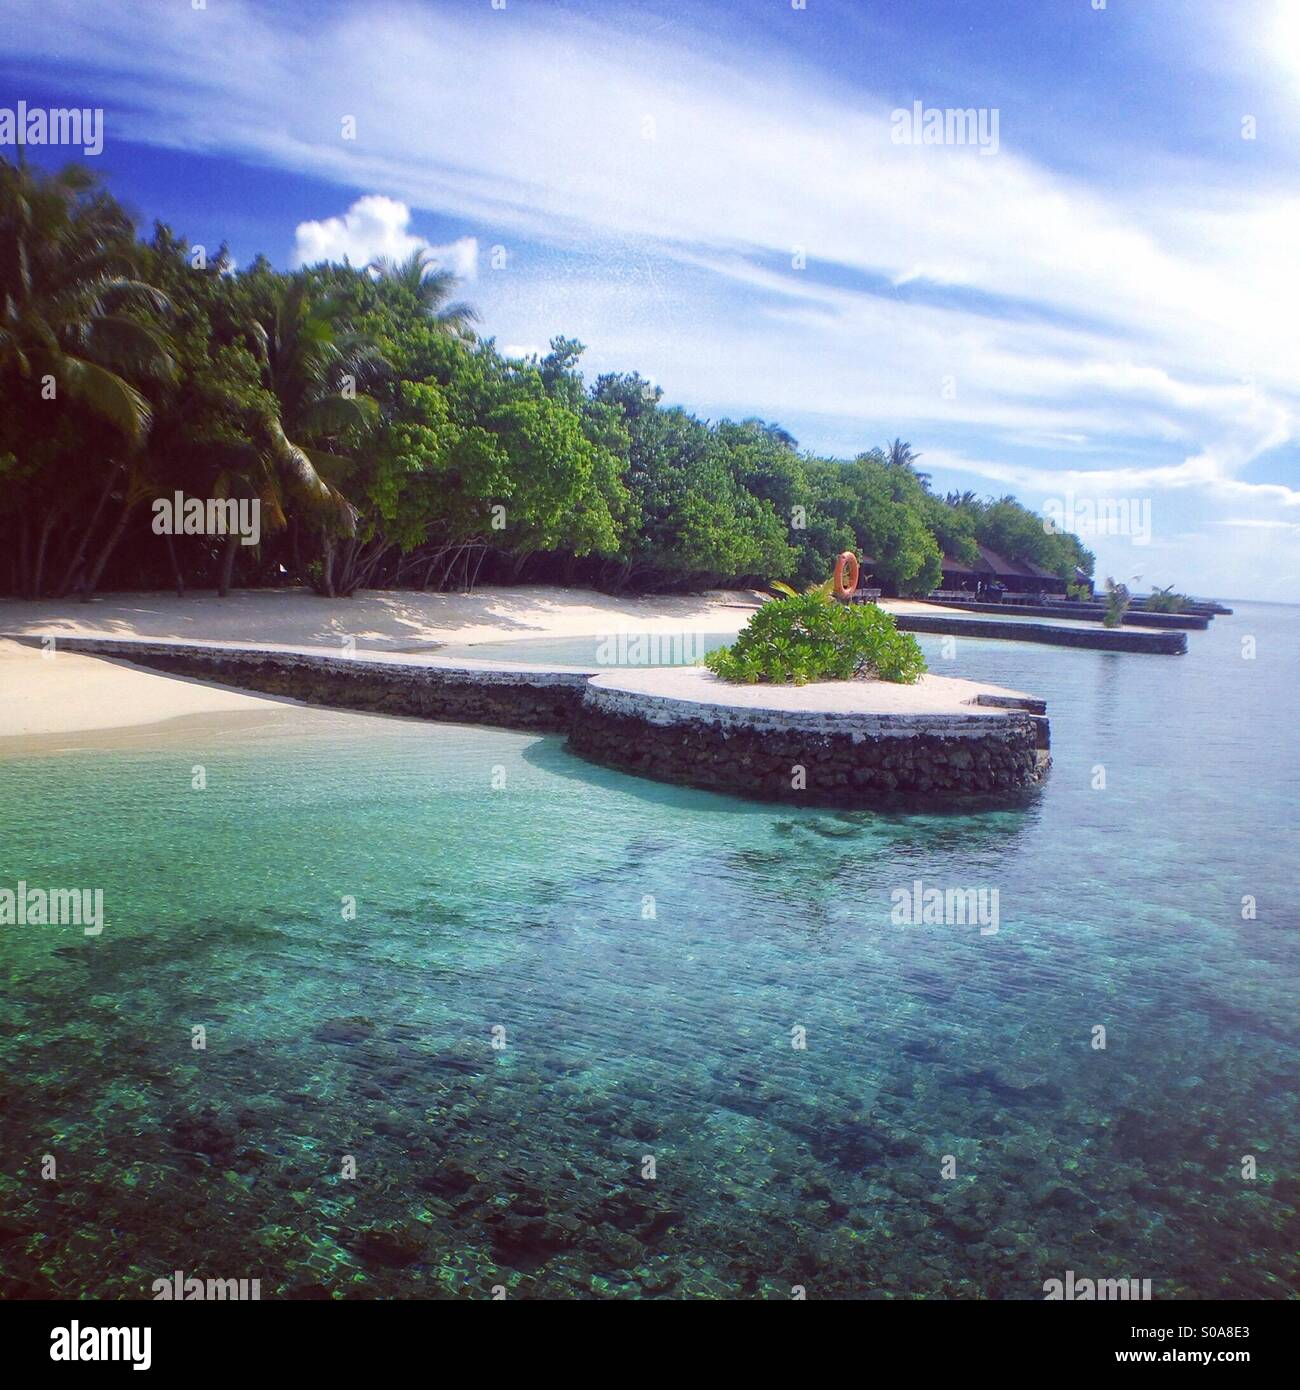 Maldives - Stock Image